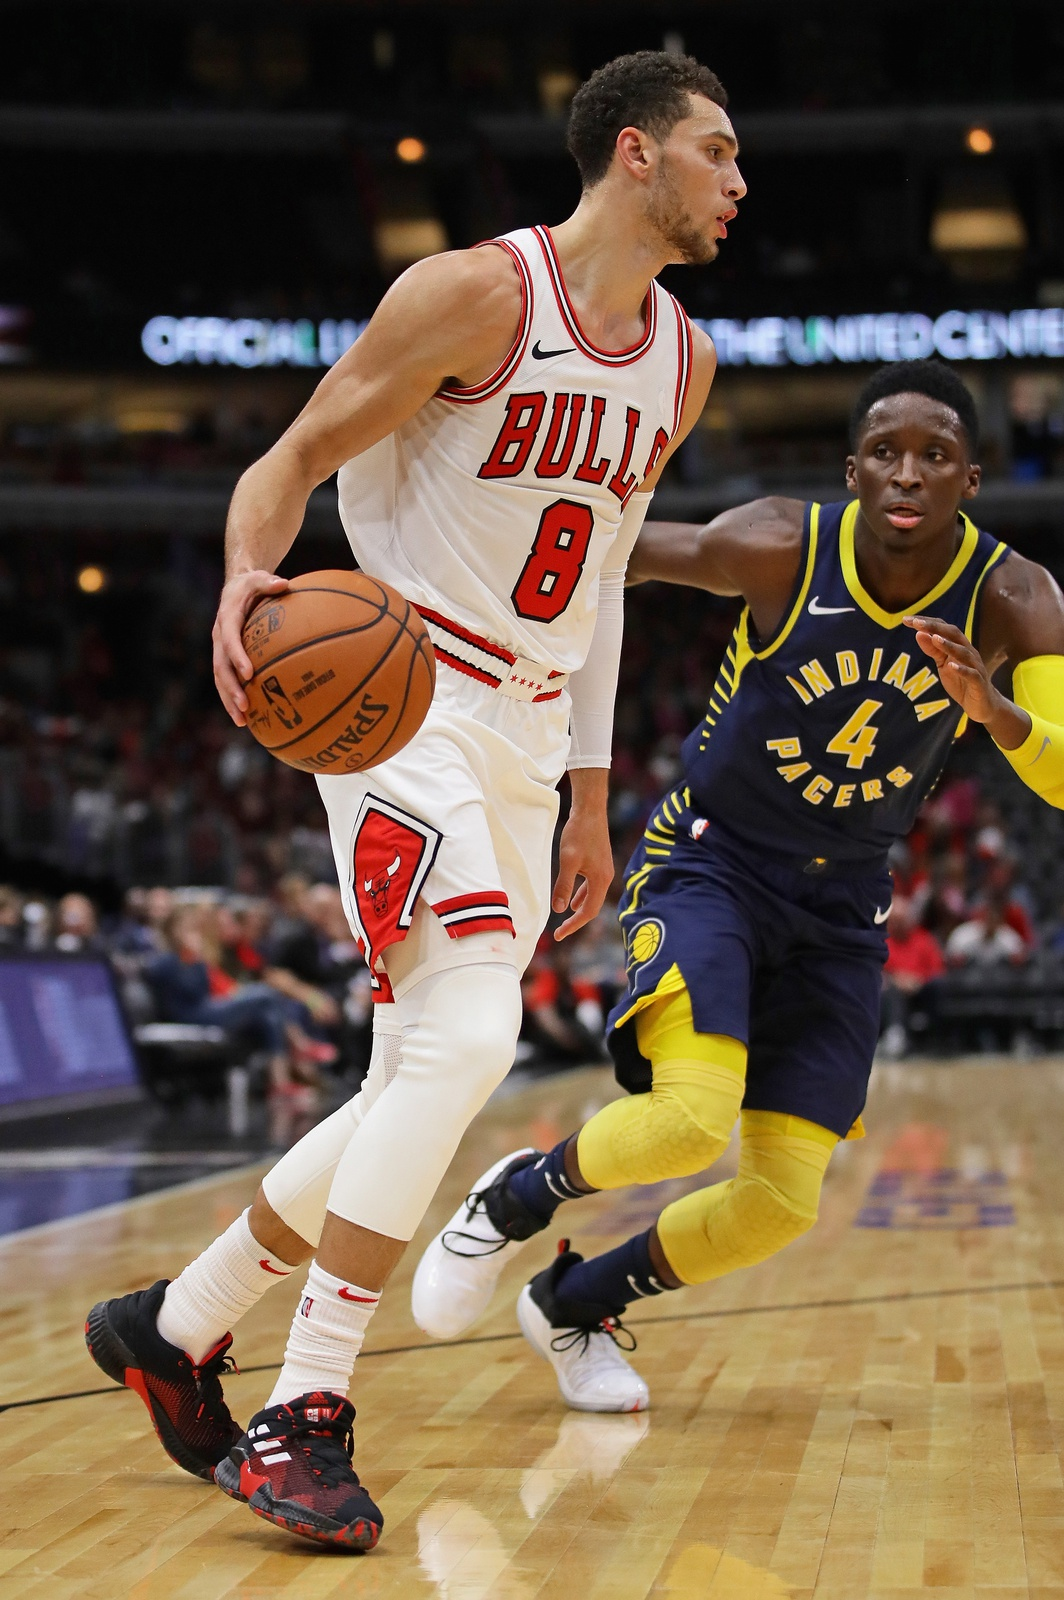 Zach LaVine #8 of the Chicago Bulls moves against Victor Oladipo #4 of the Indiana Pacers during a preseason game at the United Center on October 10, 2018 in Chicago, Illinois.